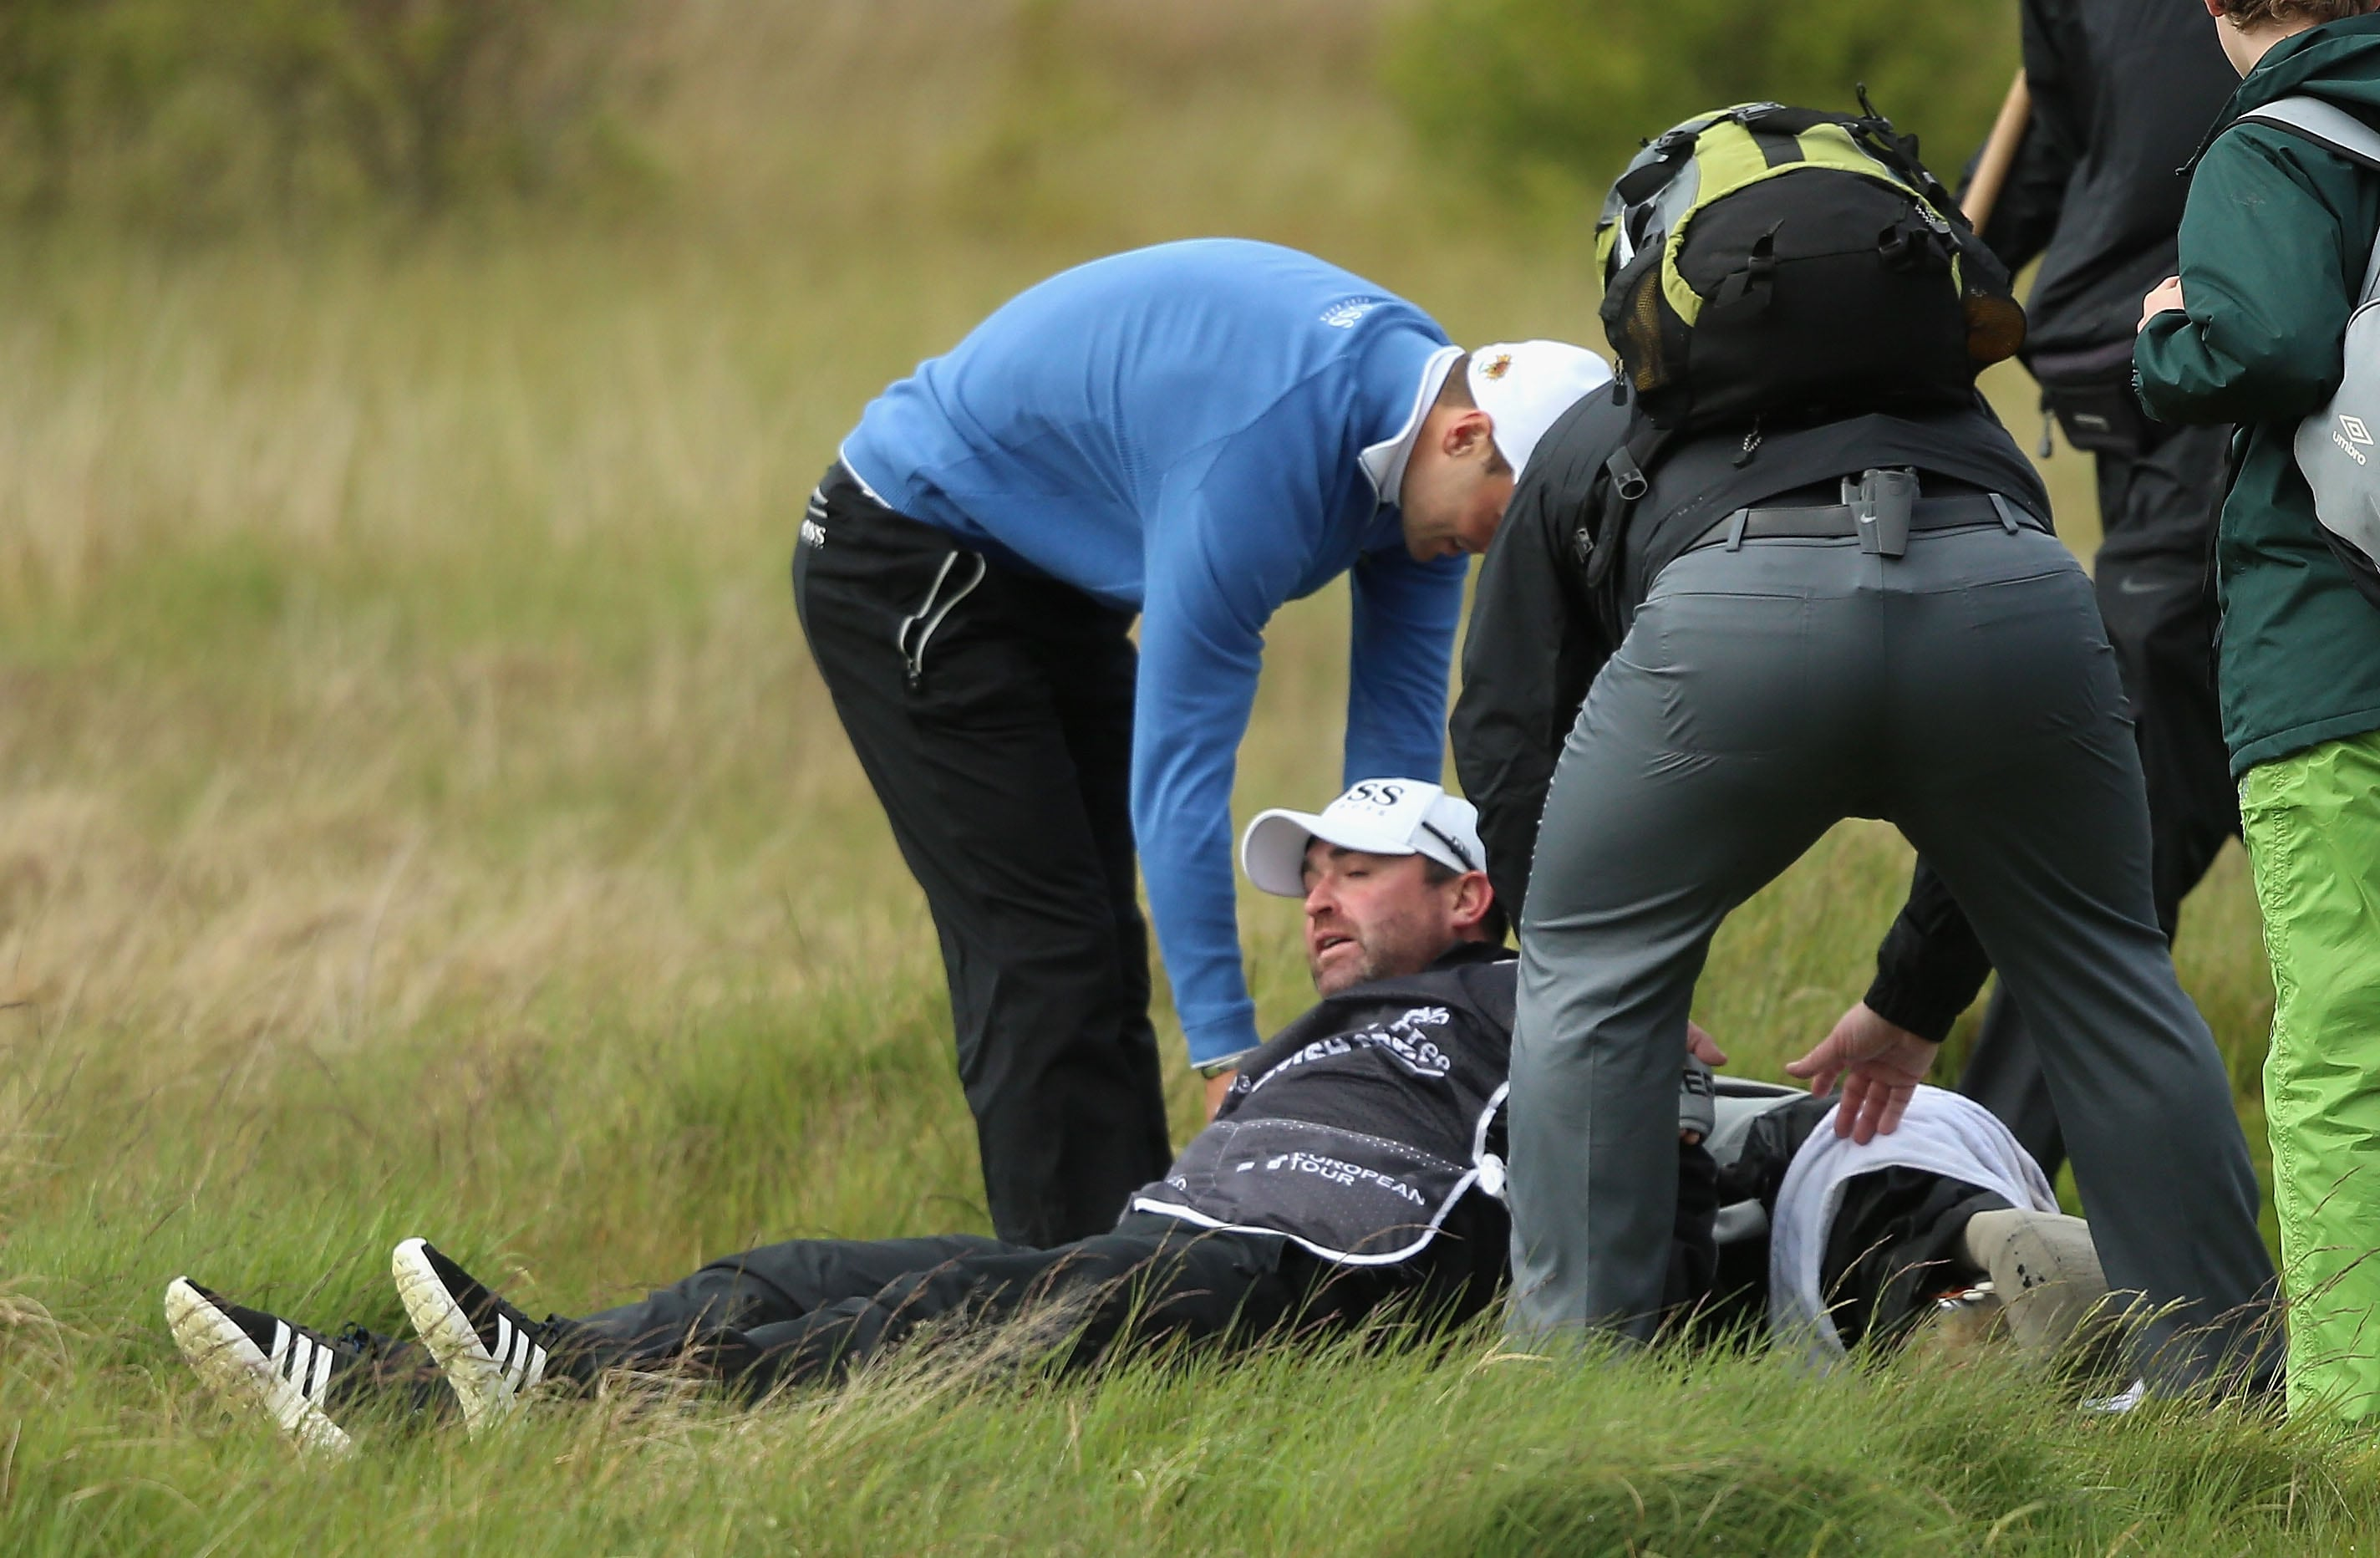 Tough course - on caddies, too